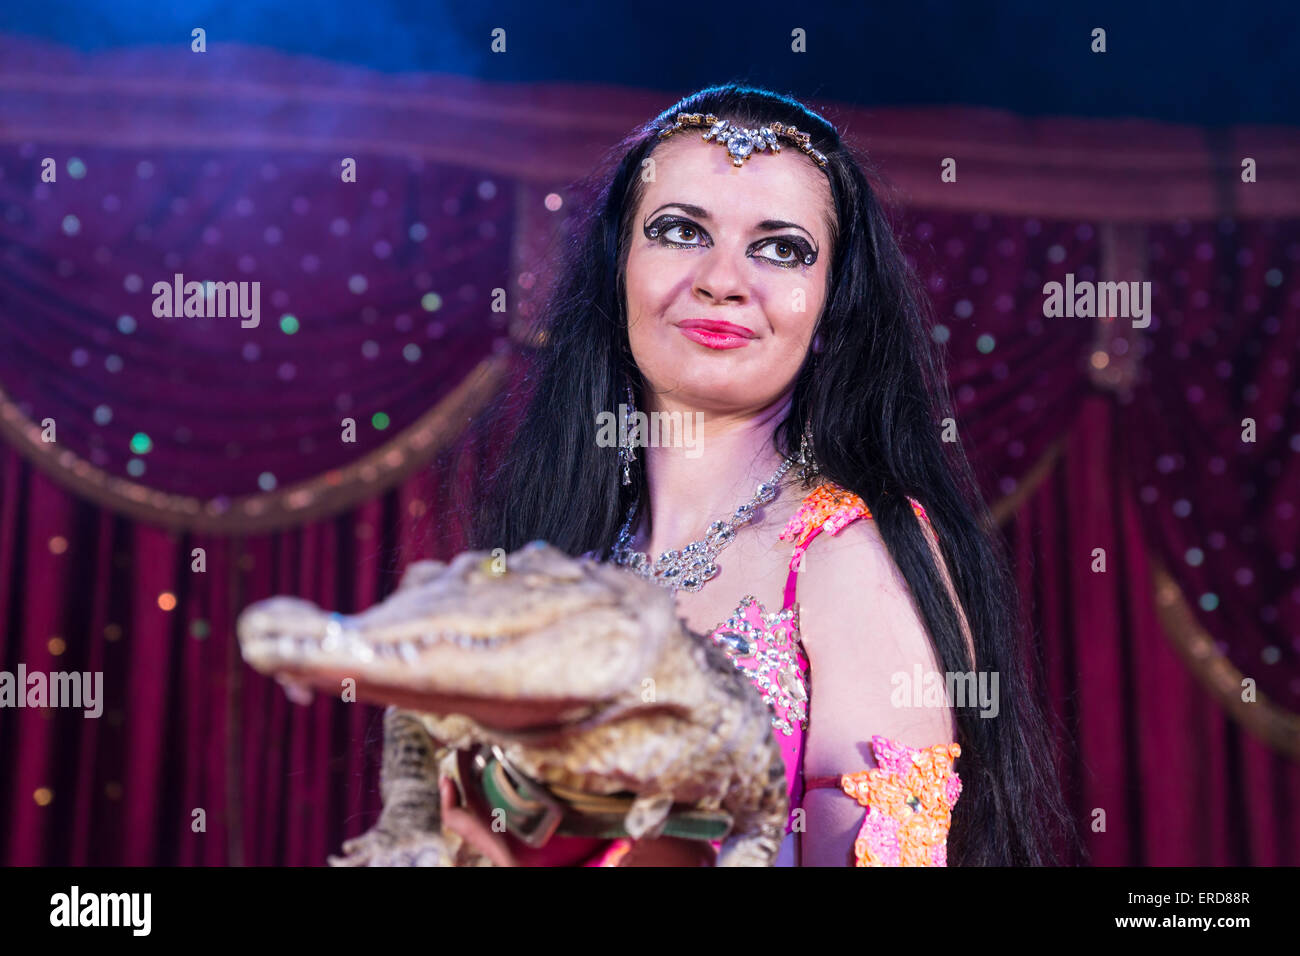 Portrait of Exotic Dark Haired Belly Dancer Wearing Bright Costume Holding Small Crocodile While Standing on Stage Stock Photo